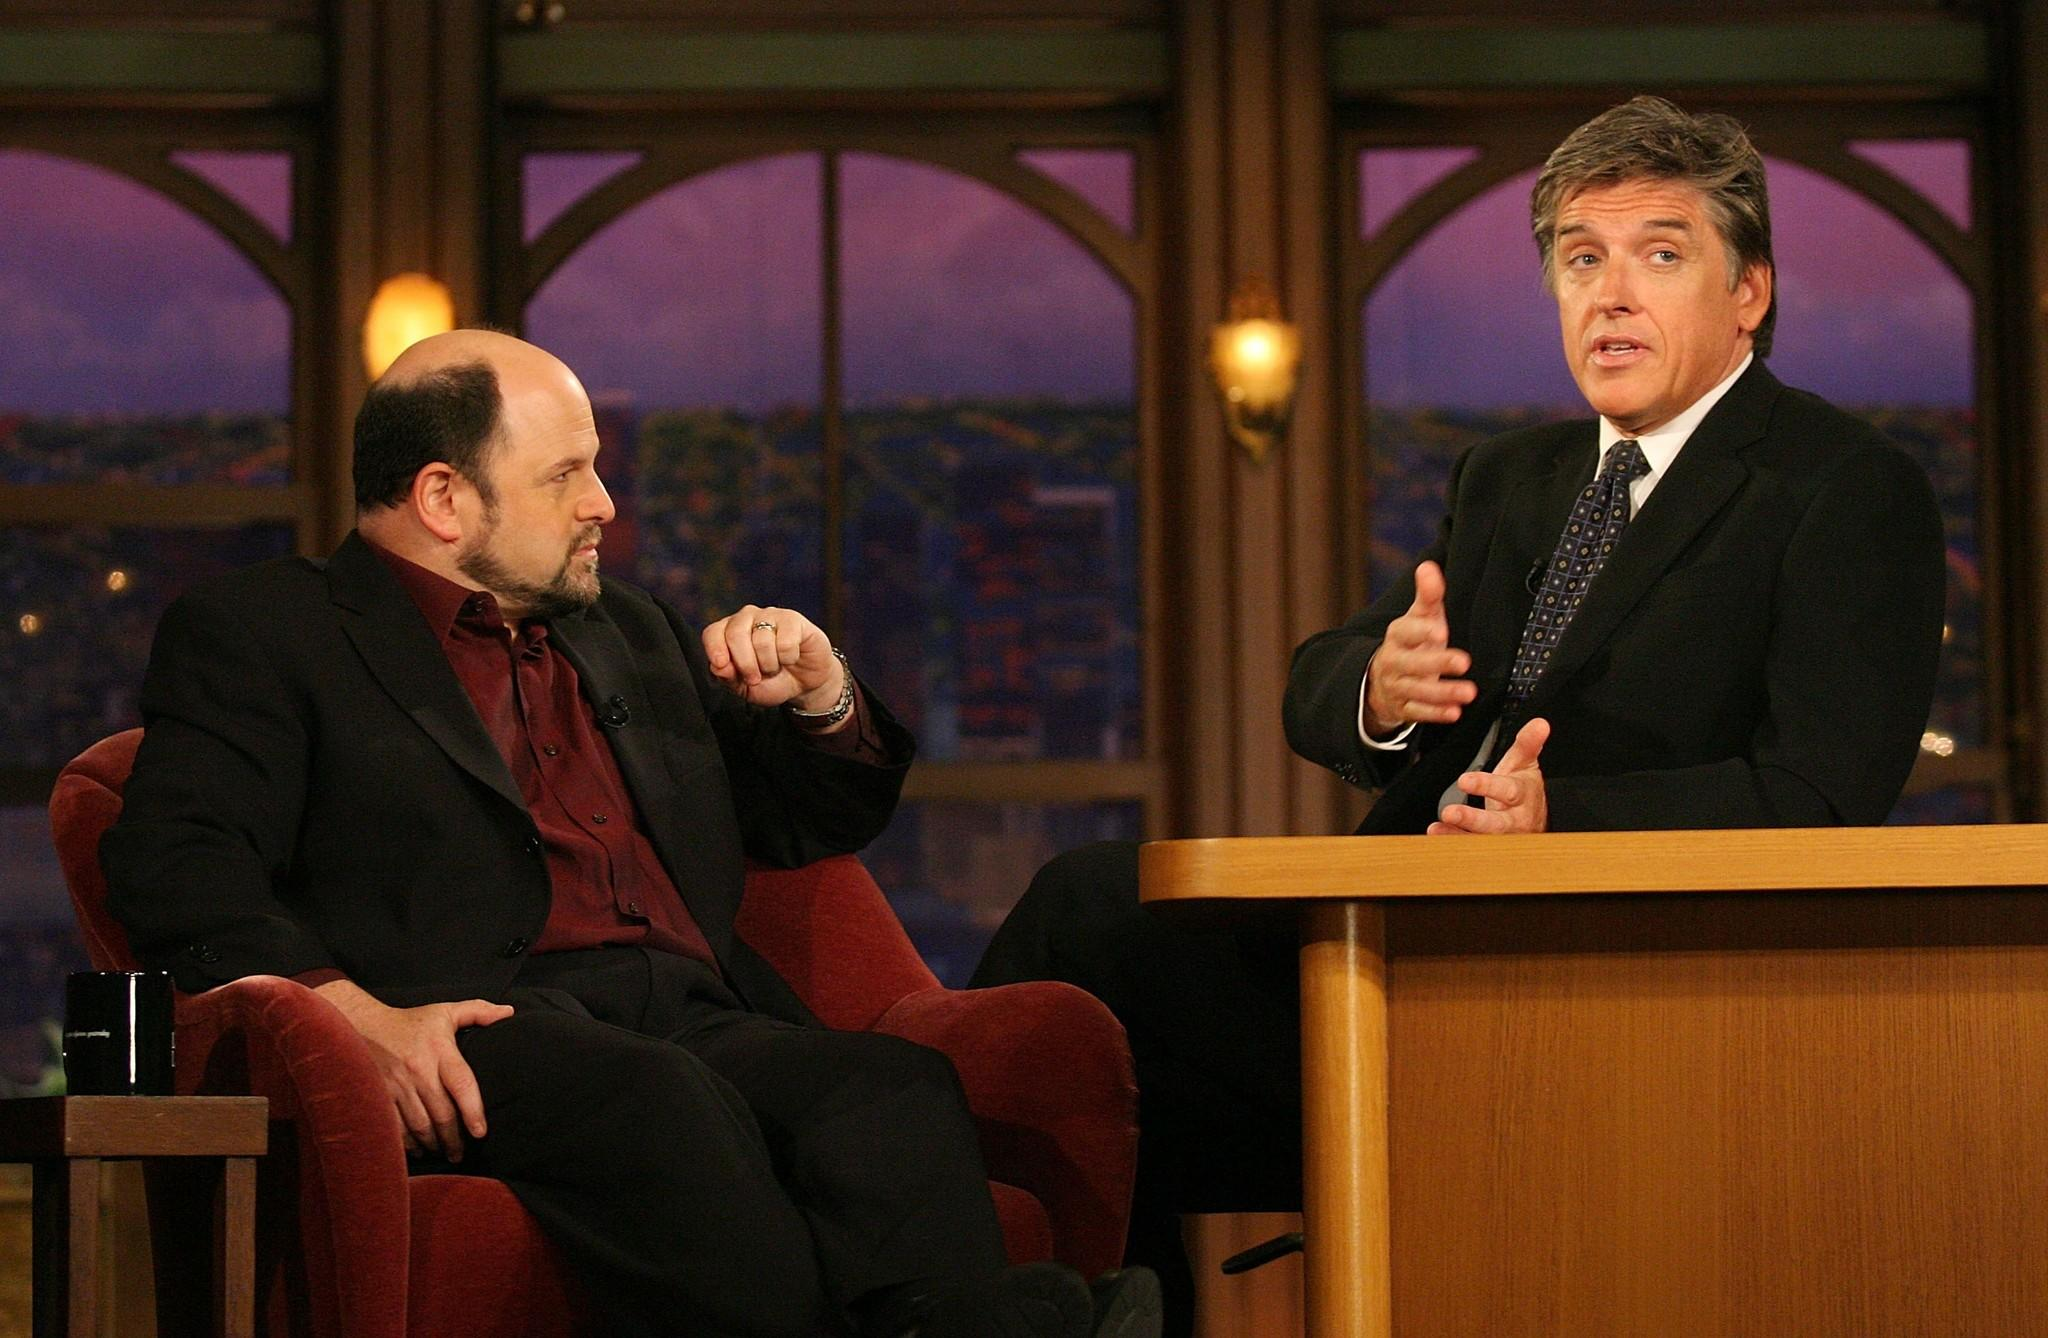 "(L-R) Actor Jason Alexander and host Craig Ferguson speak during a segment of ""The Late Late Show with Craig Ferguson"" at CBS Television City in 2007."